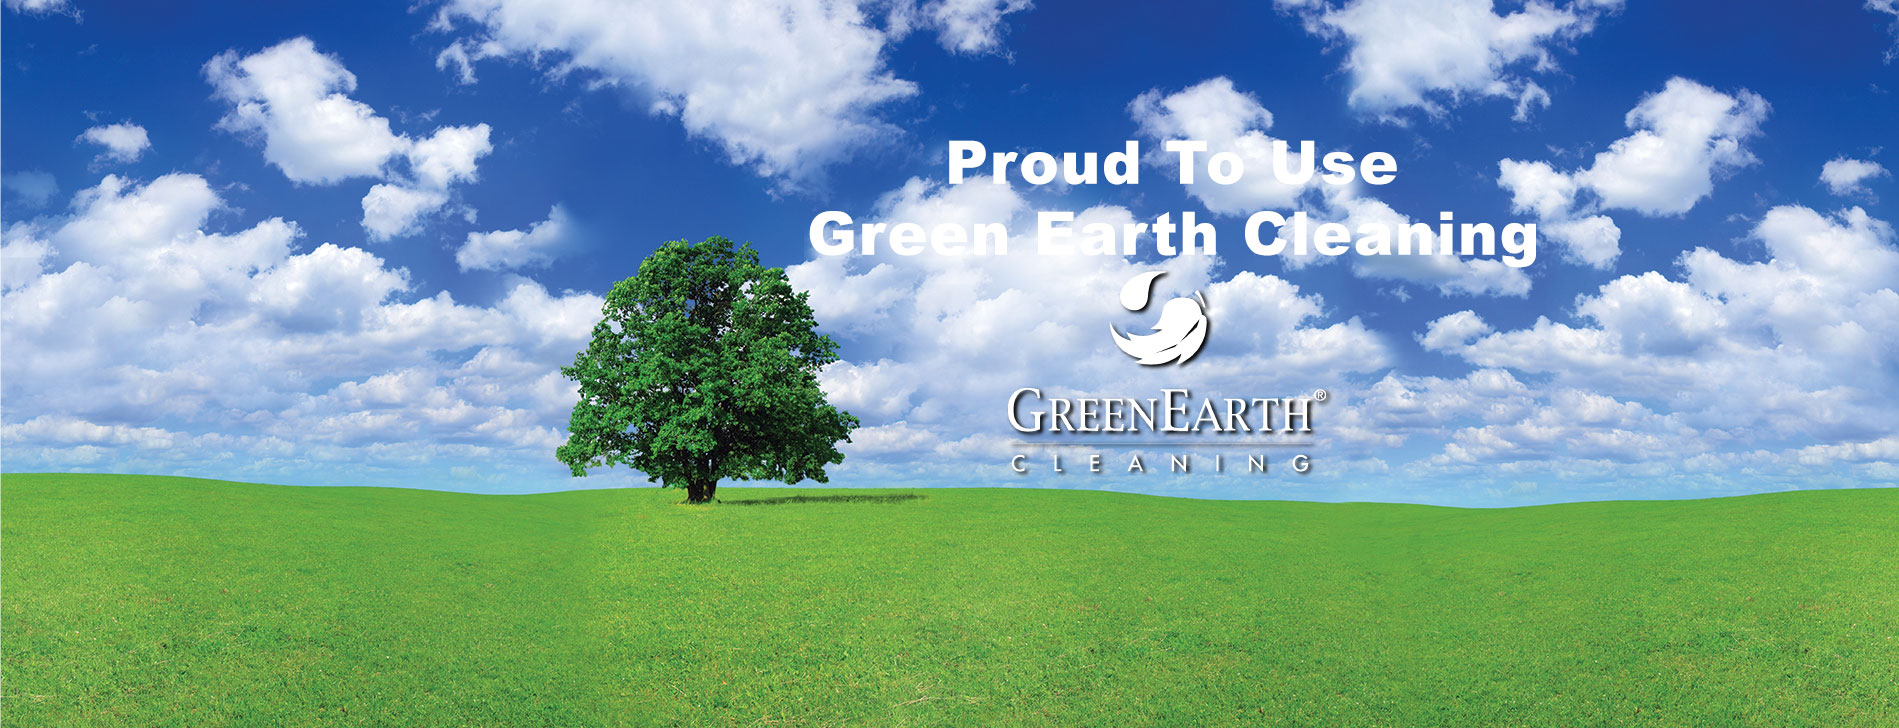 Perfect_use-GreenEarth